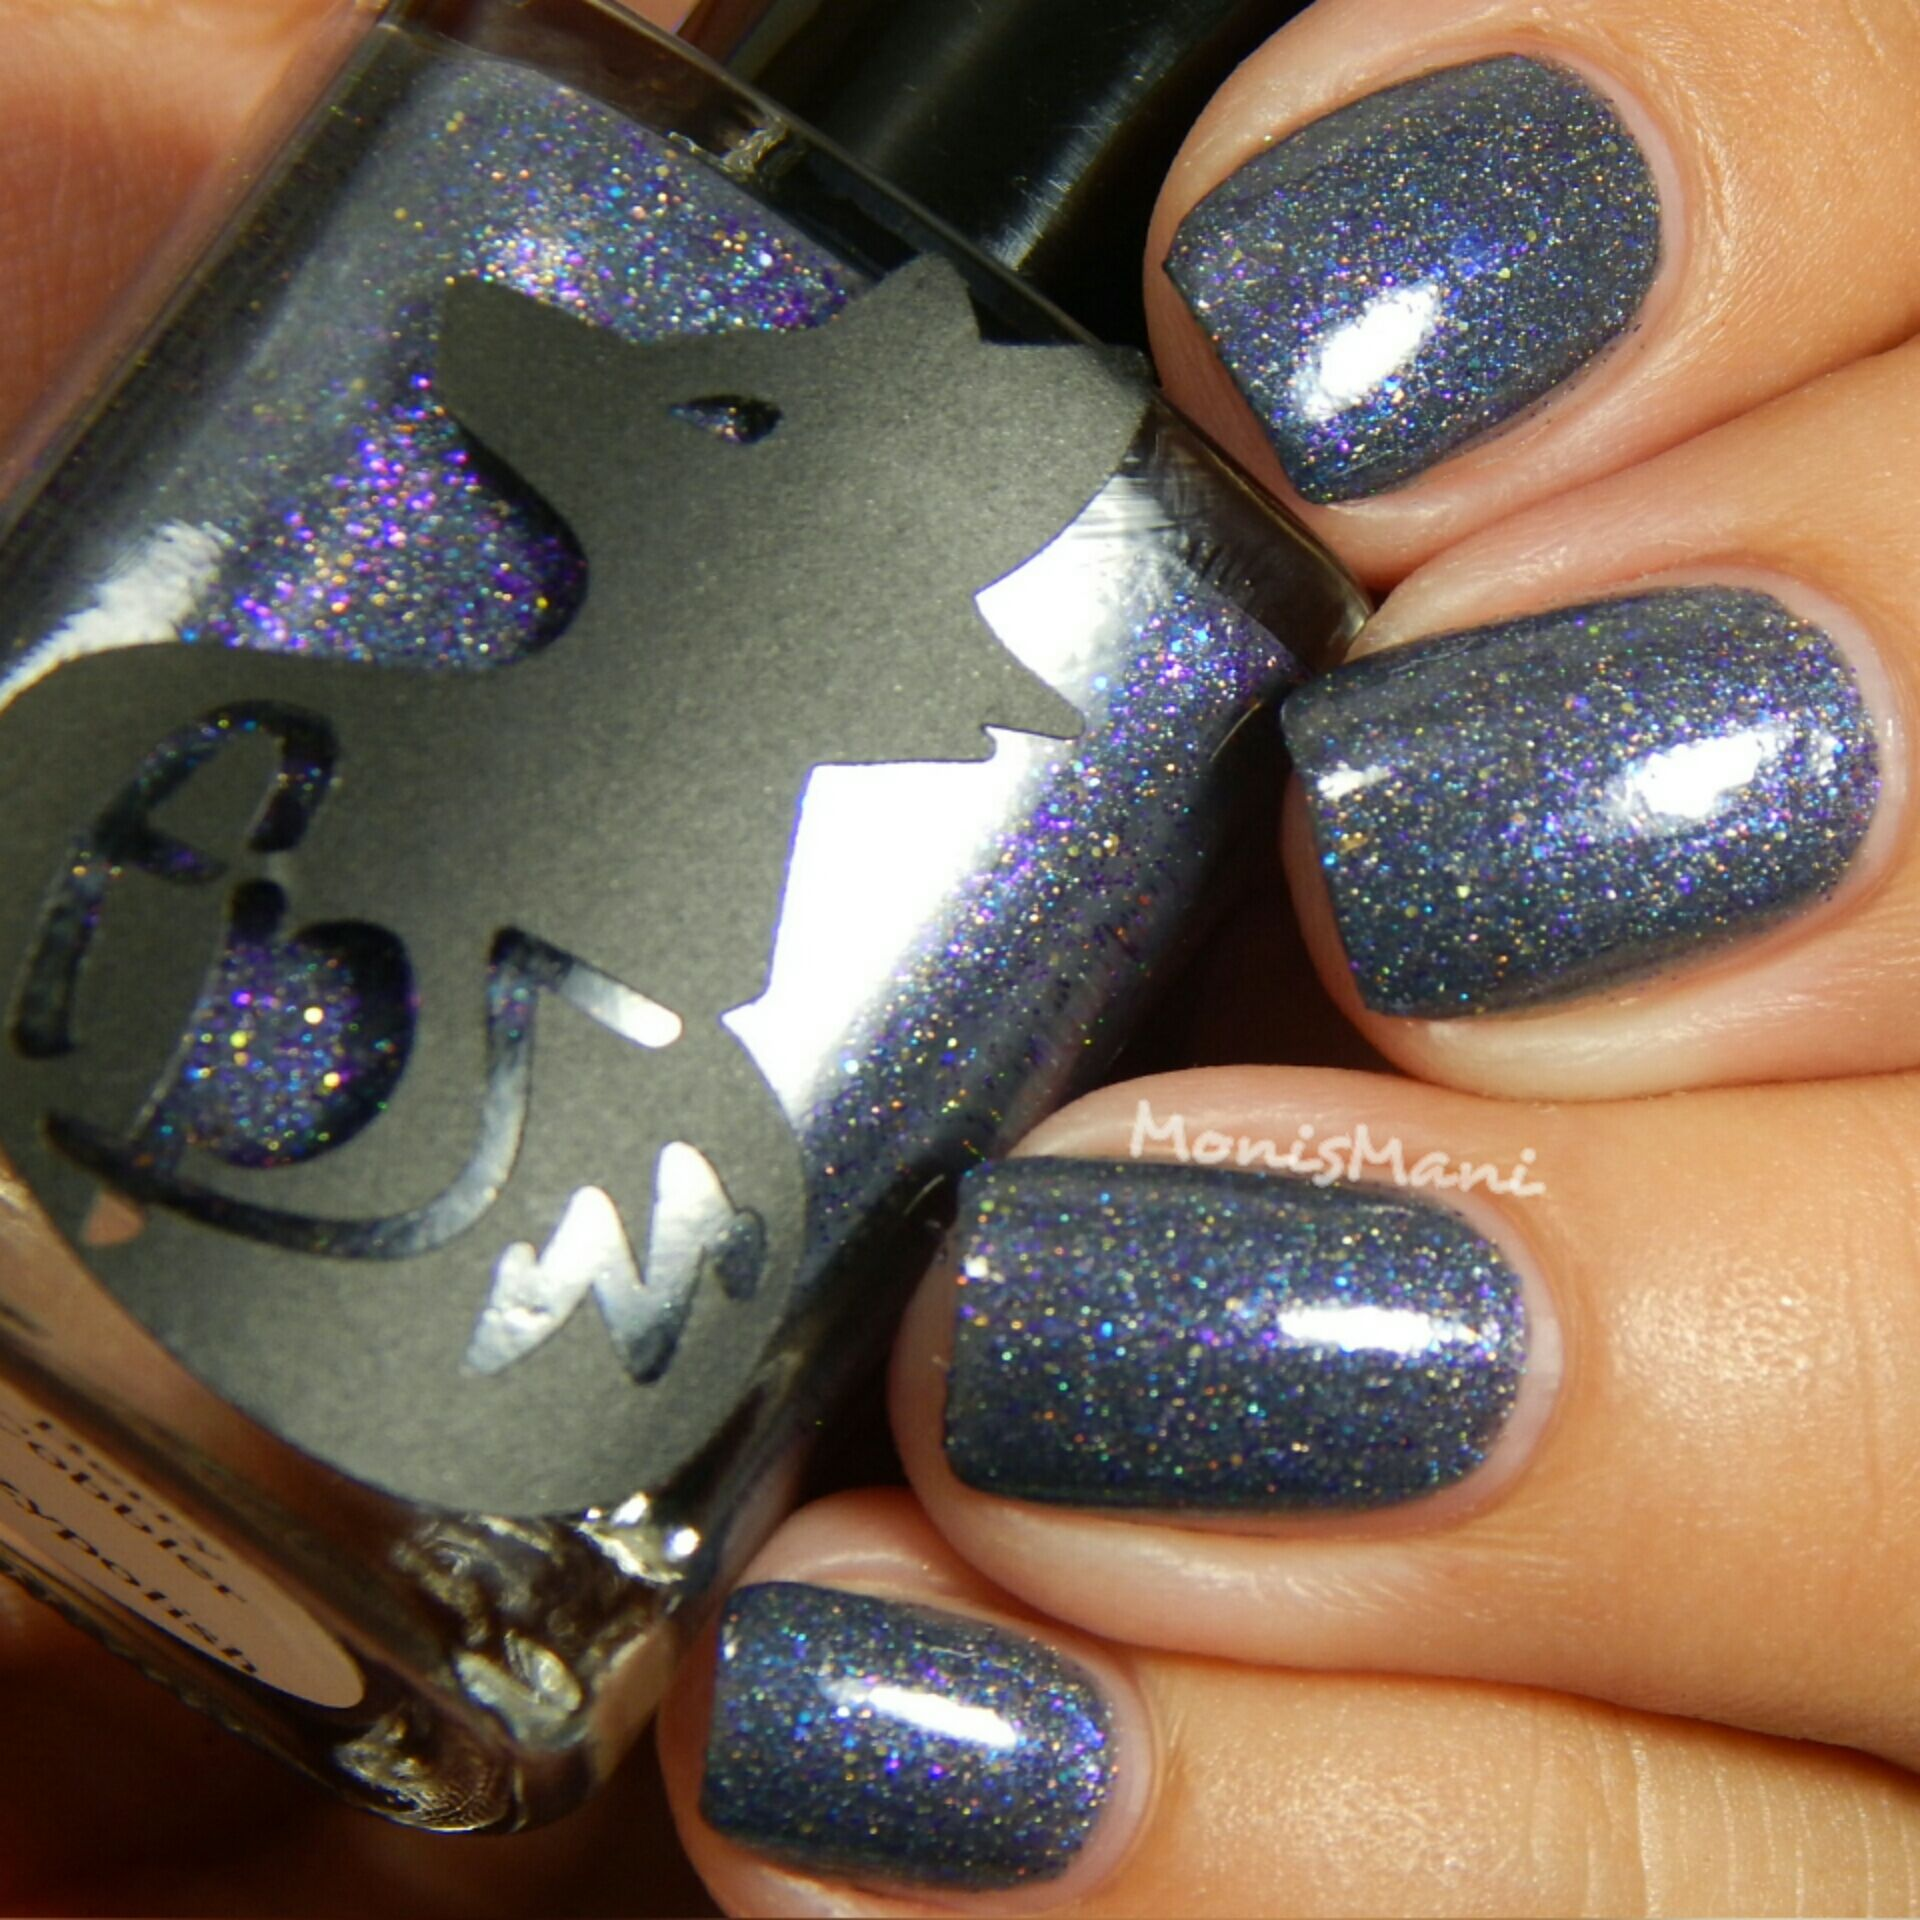 Frenzy Polish 2015 Fall Collection   Berry, Pedi and Fabulous nails